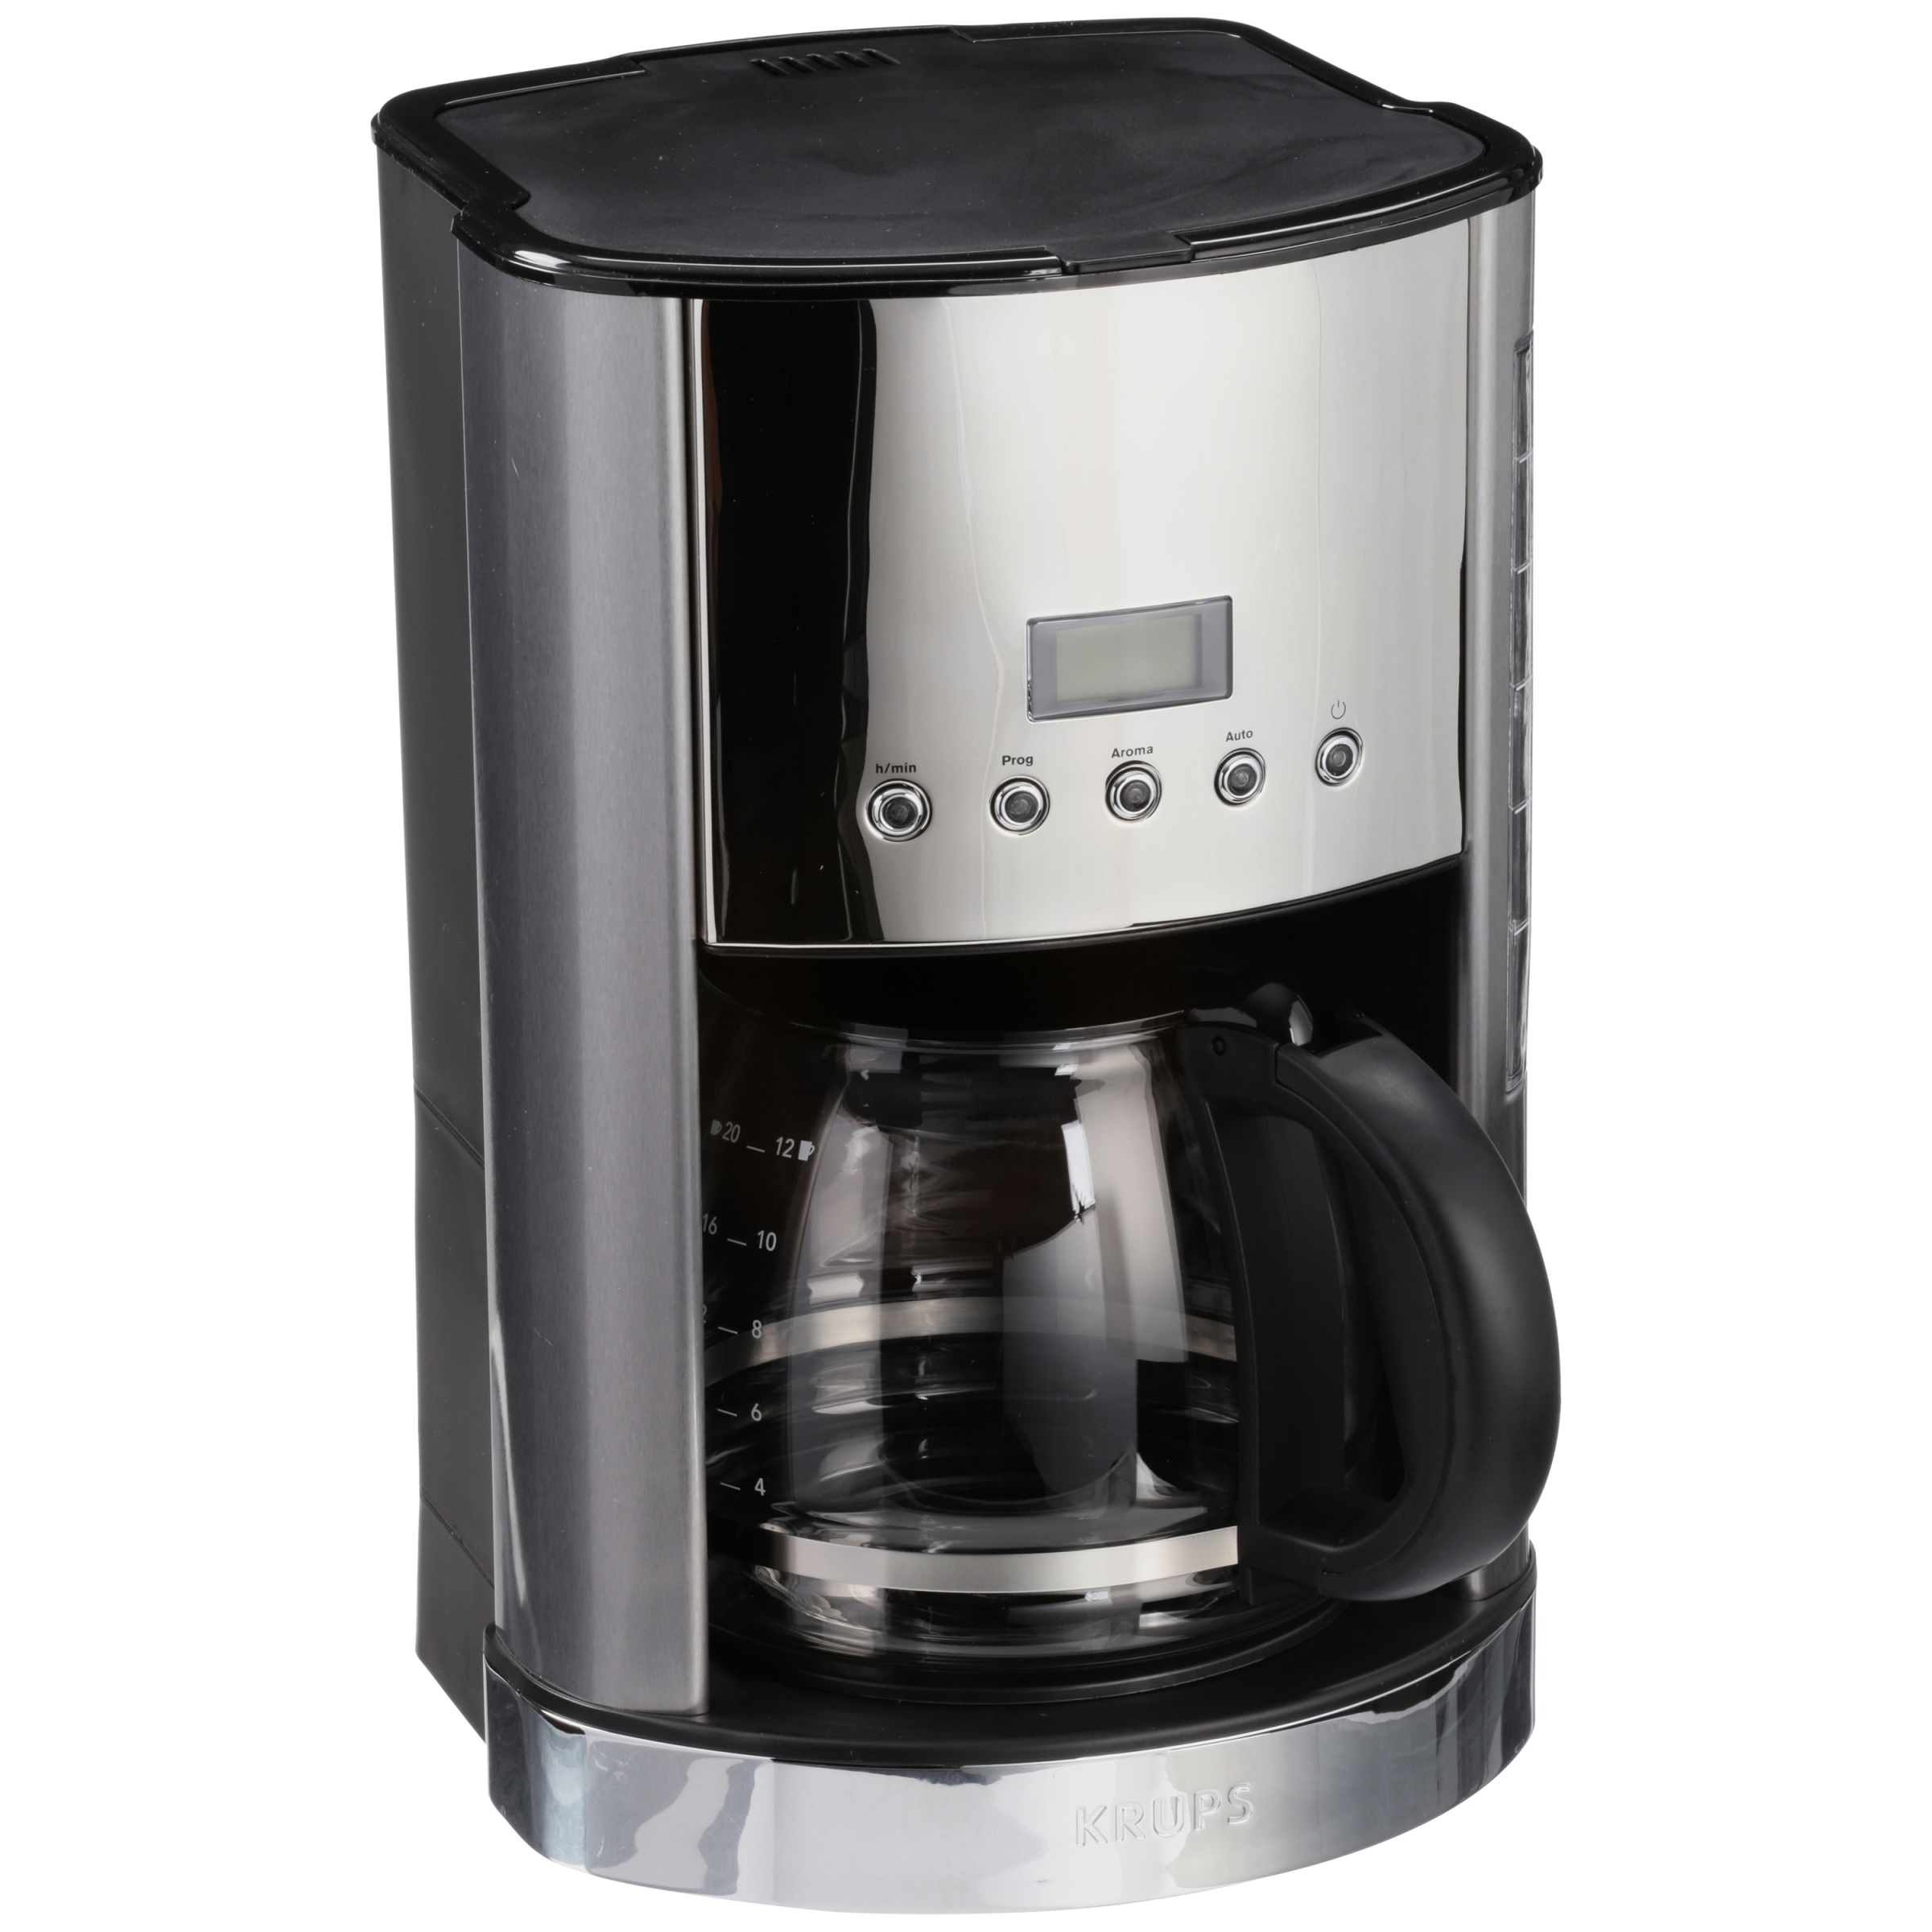 Breakfast Set Coffee Maker in Brushed Chrome and Stainless Steel